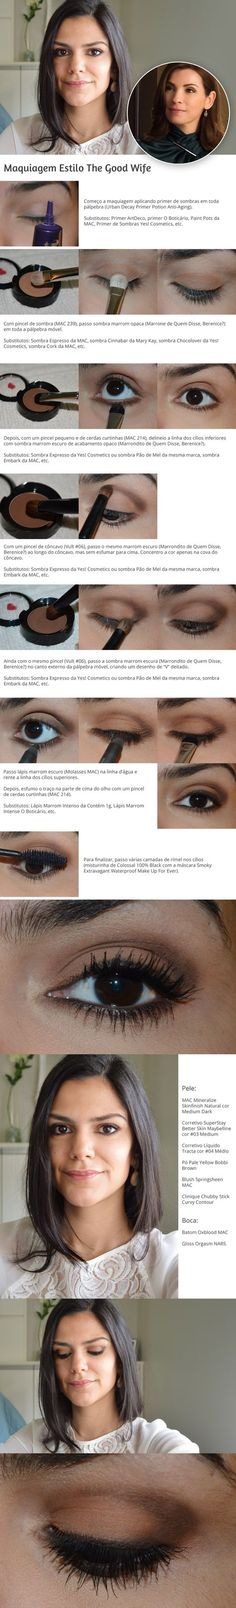 Tutorial: Maquiagem estilo The Good Wife http://www.2beauty.com.br/blog/2015/07/03/tutorial-maquiagem-estilo-the-good-wife/ #tutorial #maquiagem #TheGoodWife